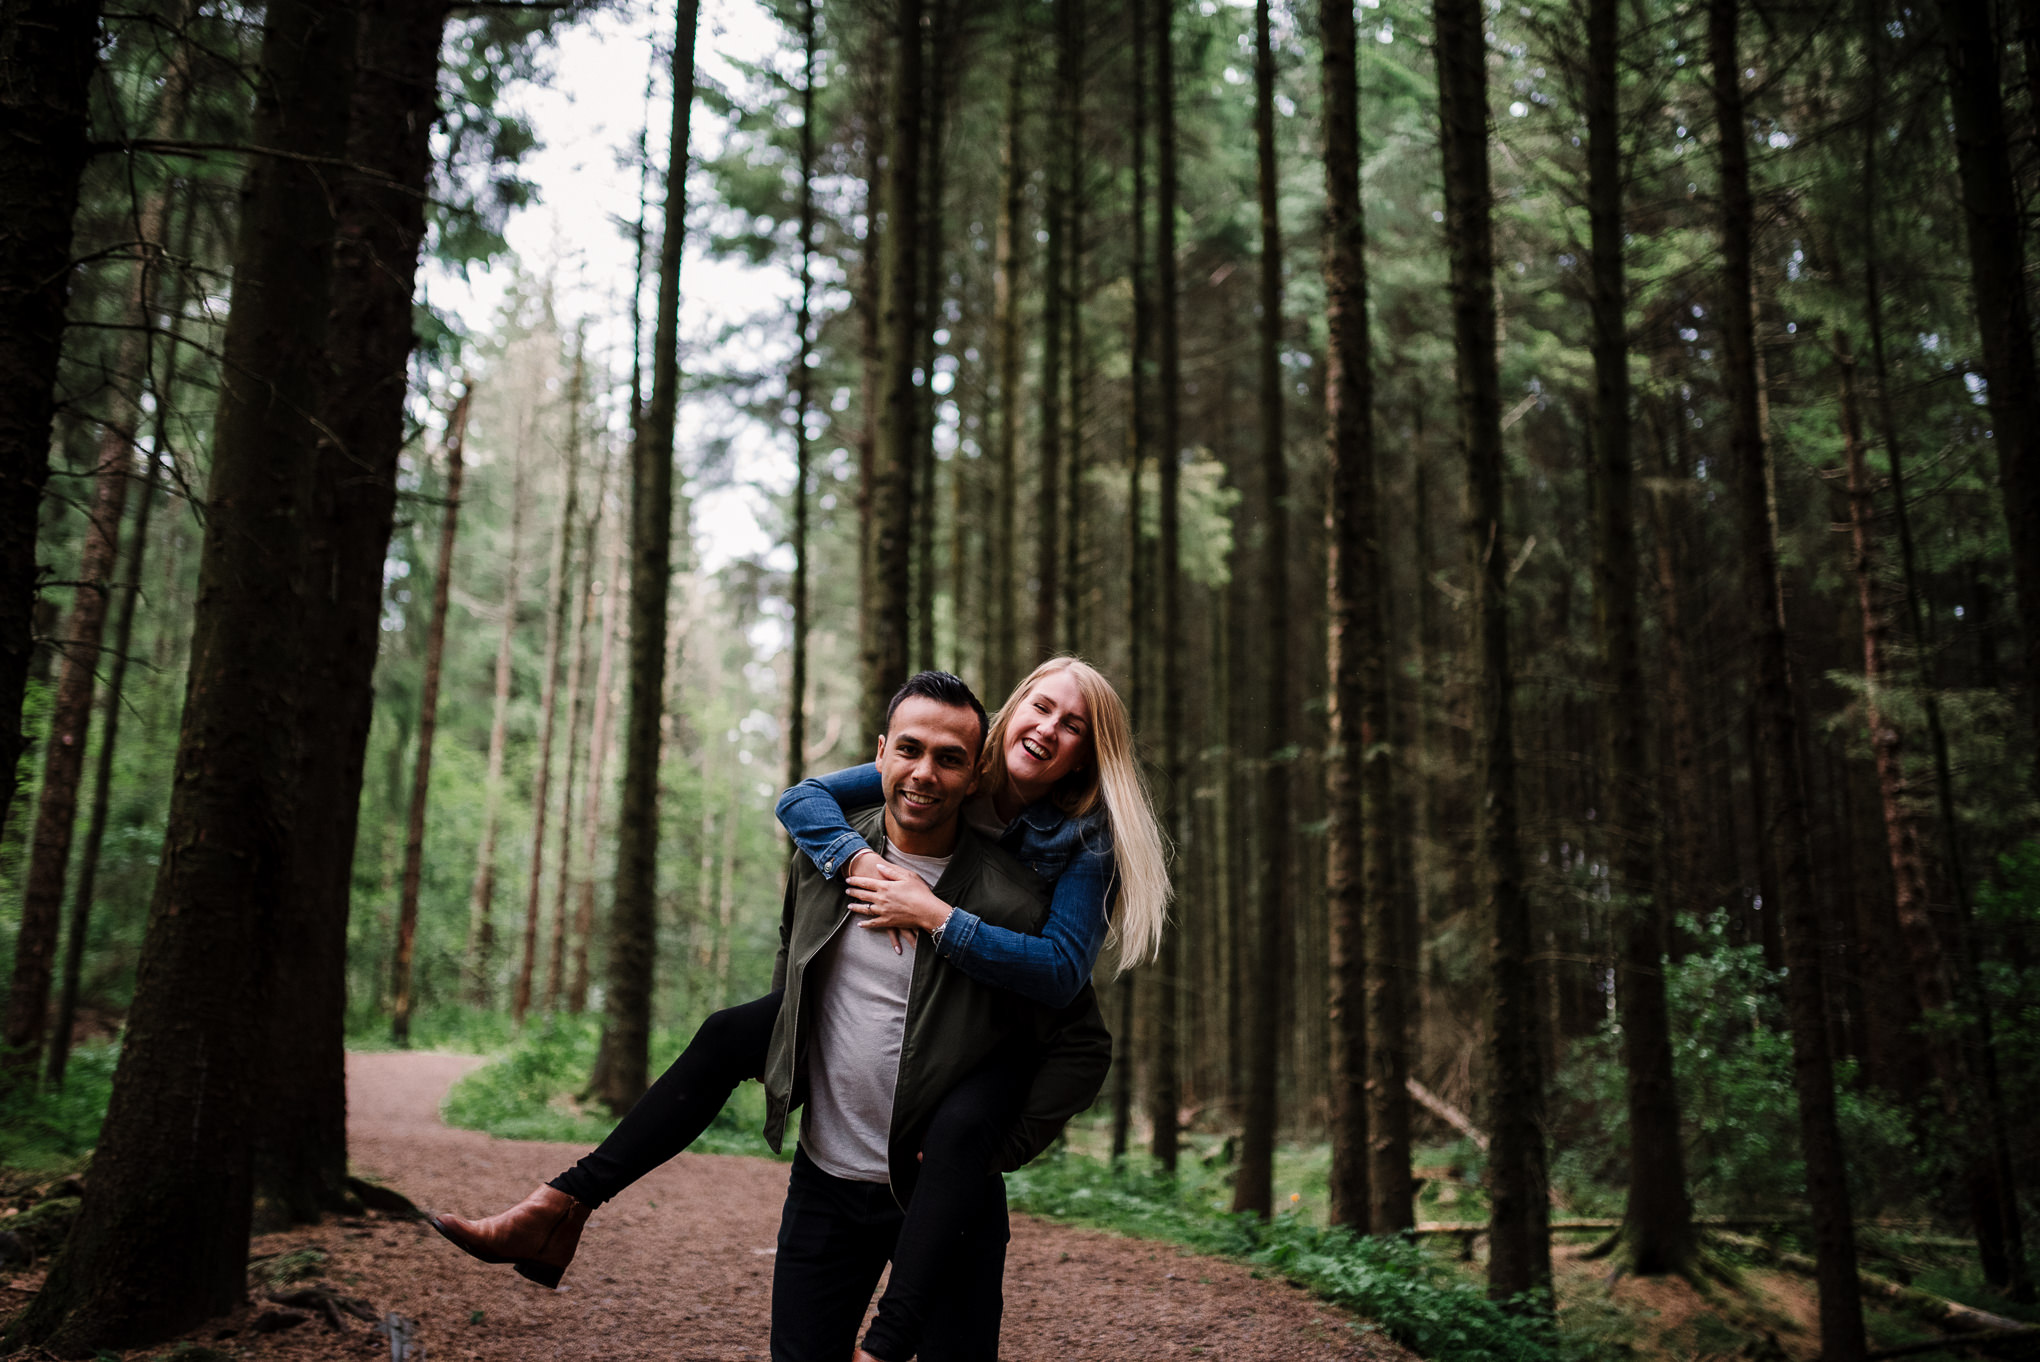 Natural photo of couple running together in the woods at Entwistle Reservoir in Bolton, Lancashire.